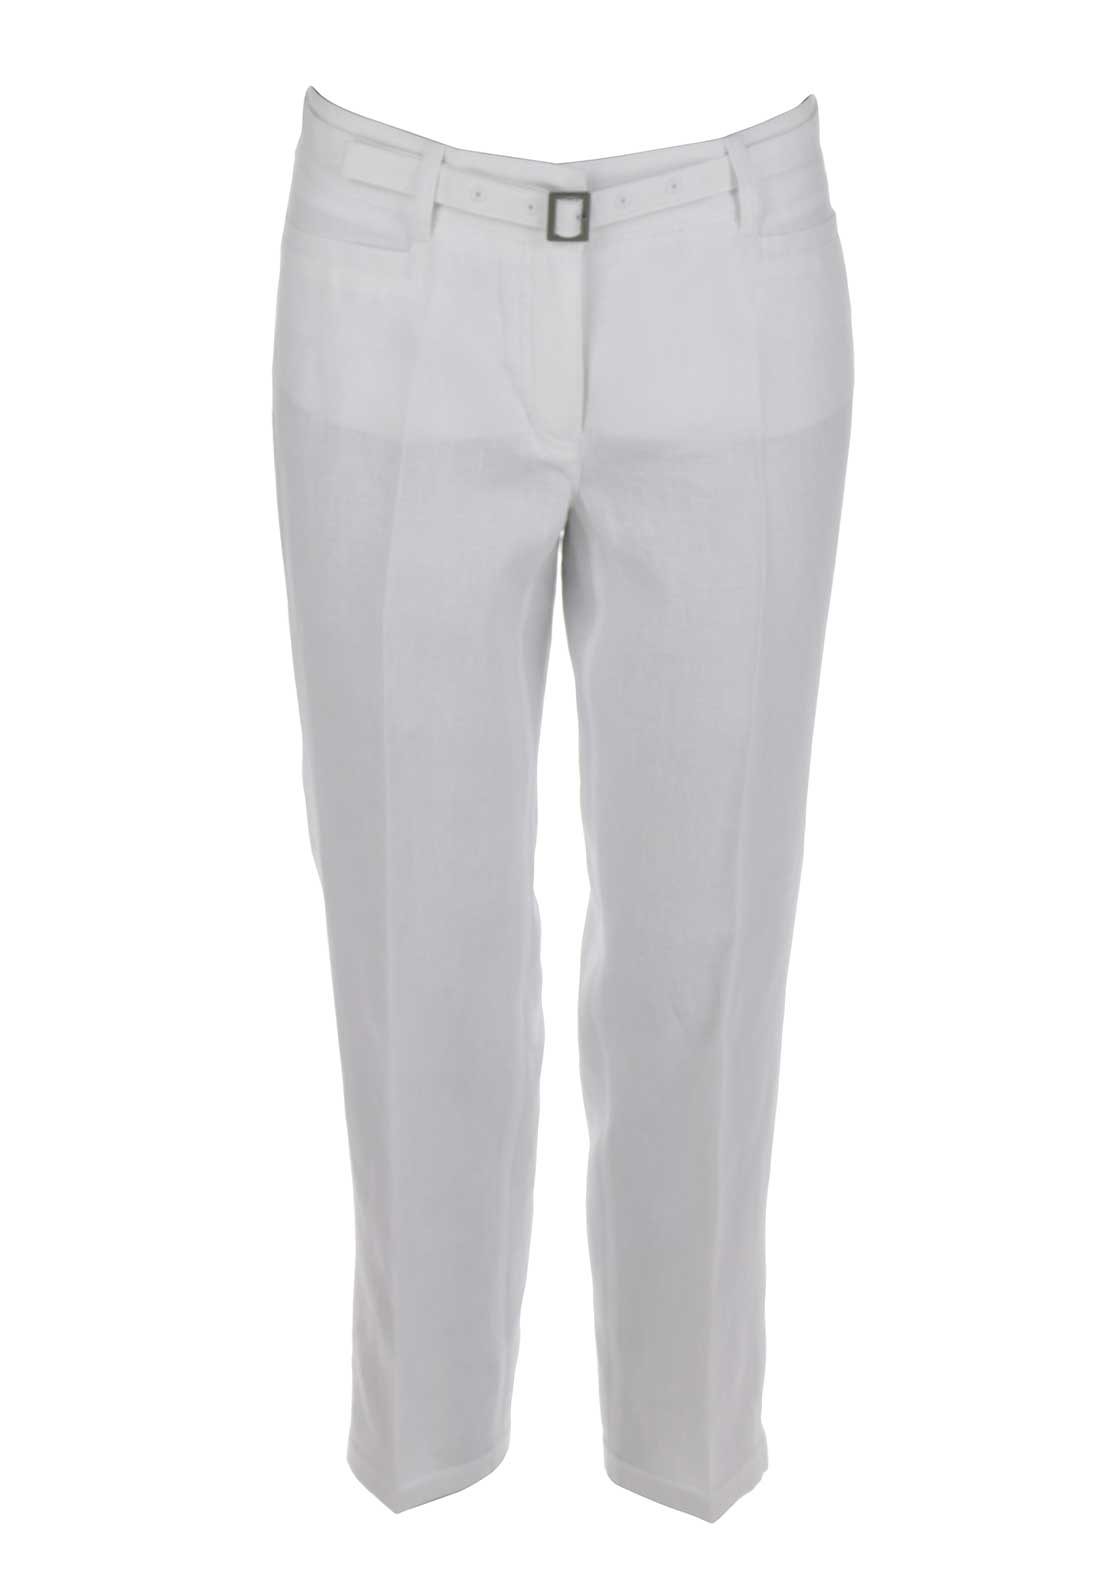 Gerry Weber Vicky Loose Fit Cropped Linen Trousers, White